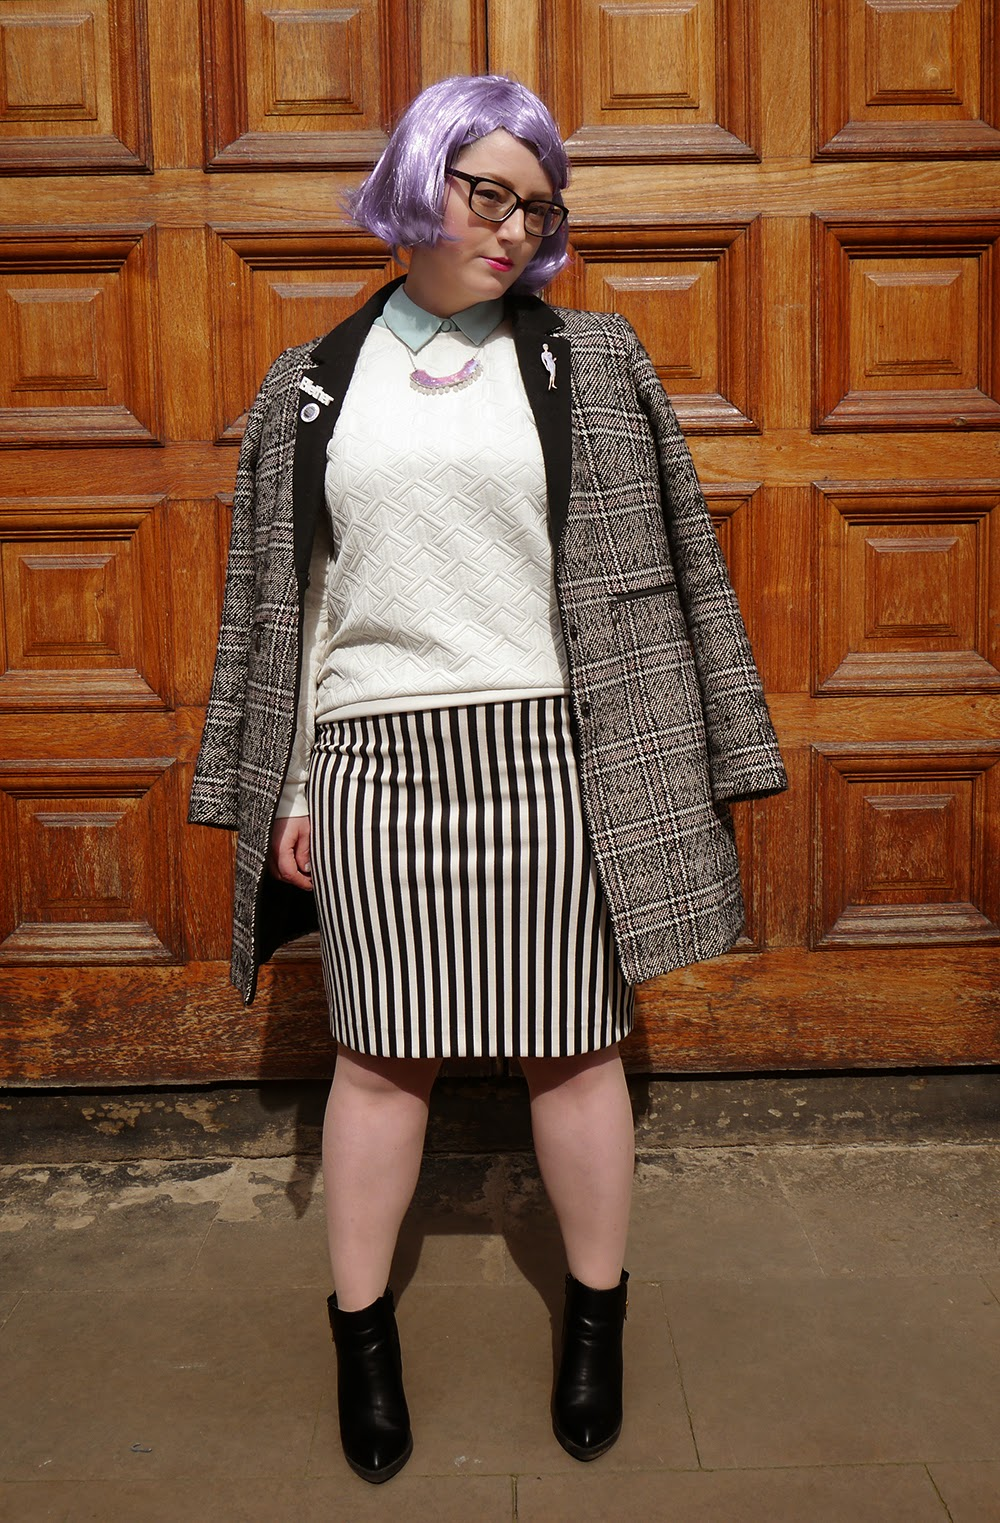 #scotstreetstyle, #EdFashion, Edinburgh, street style, tartan, plaid, Wear Eponymous, collar, futuristic